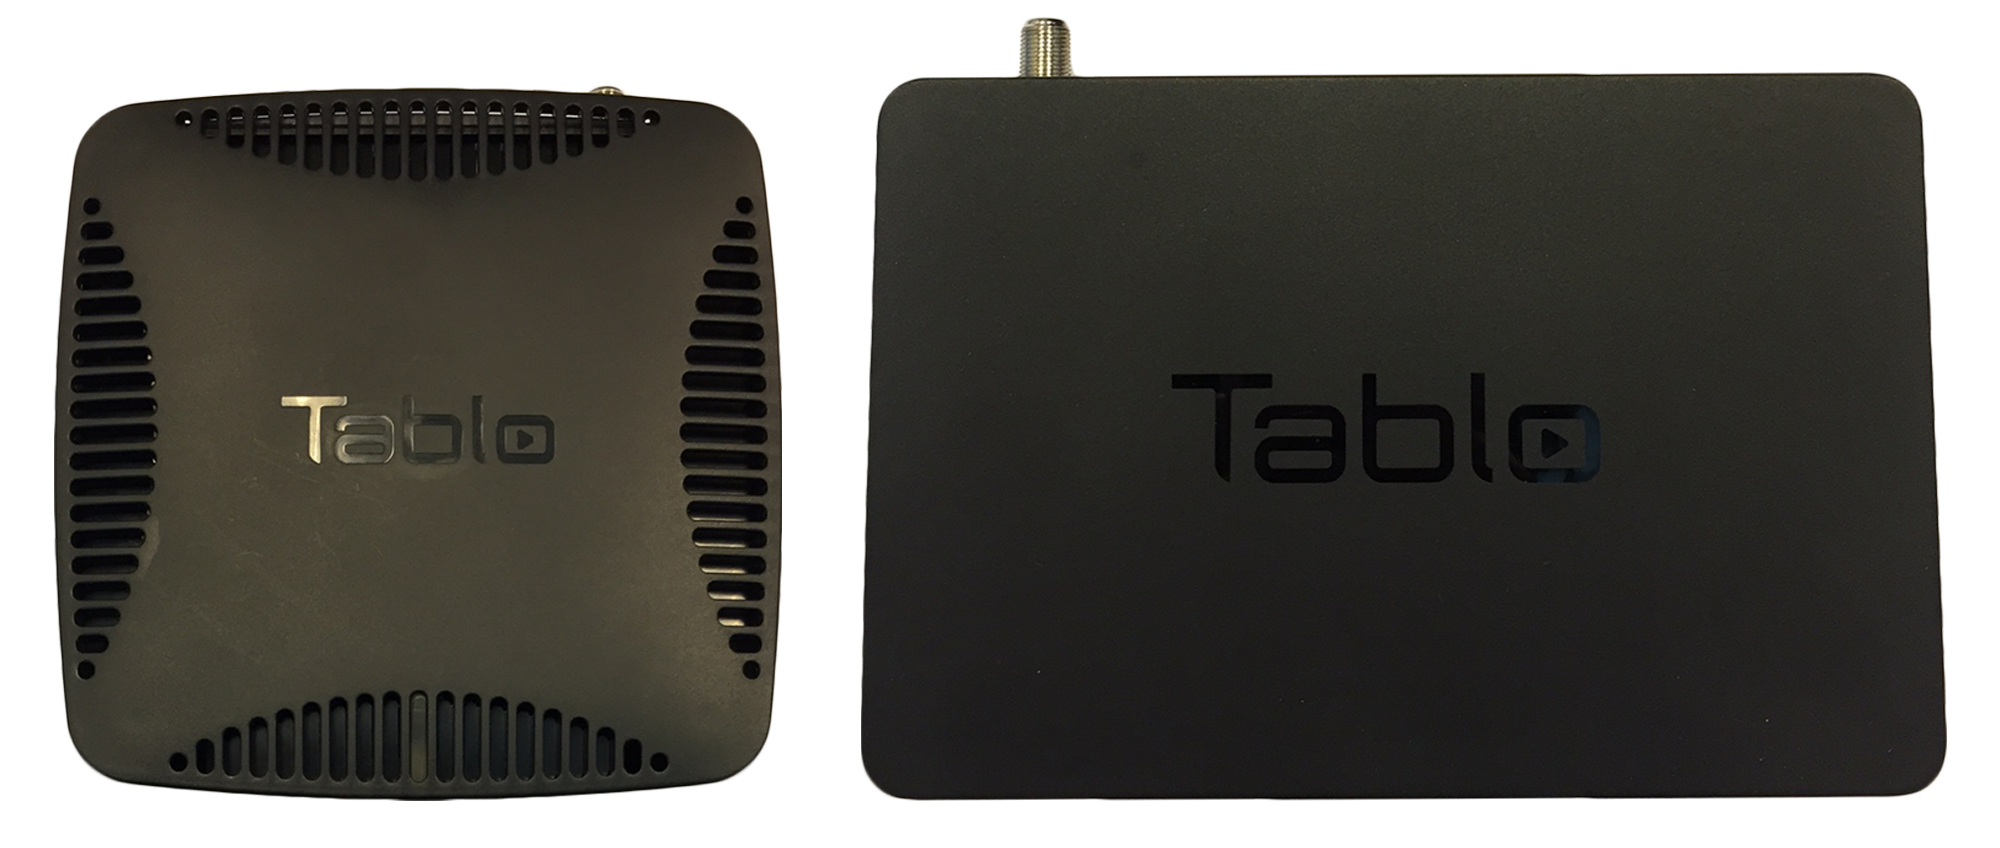 Tablo 2-Tuner vs. Tablo DUAL size